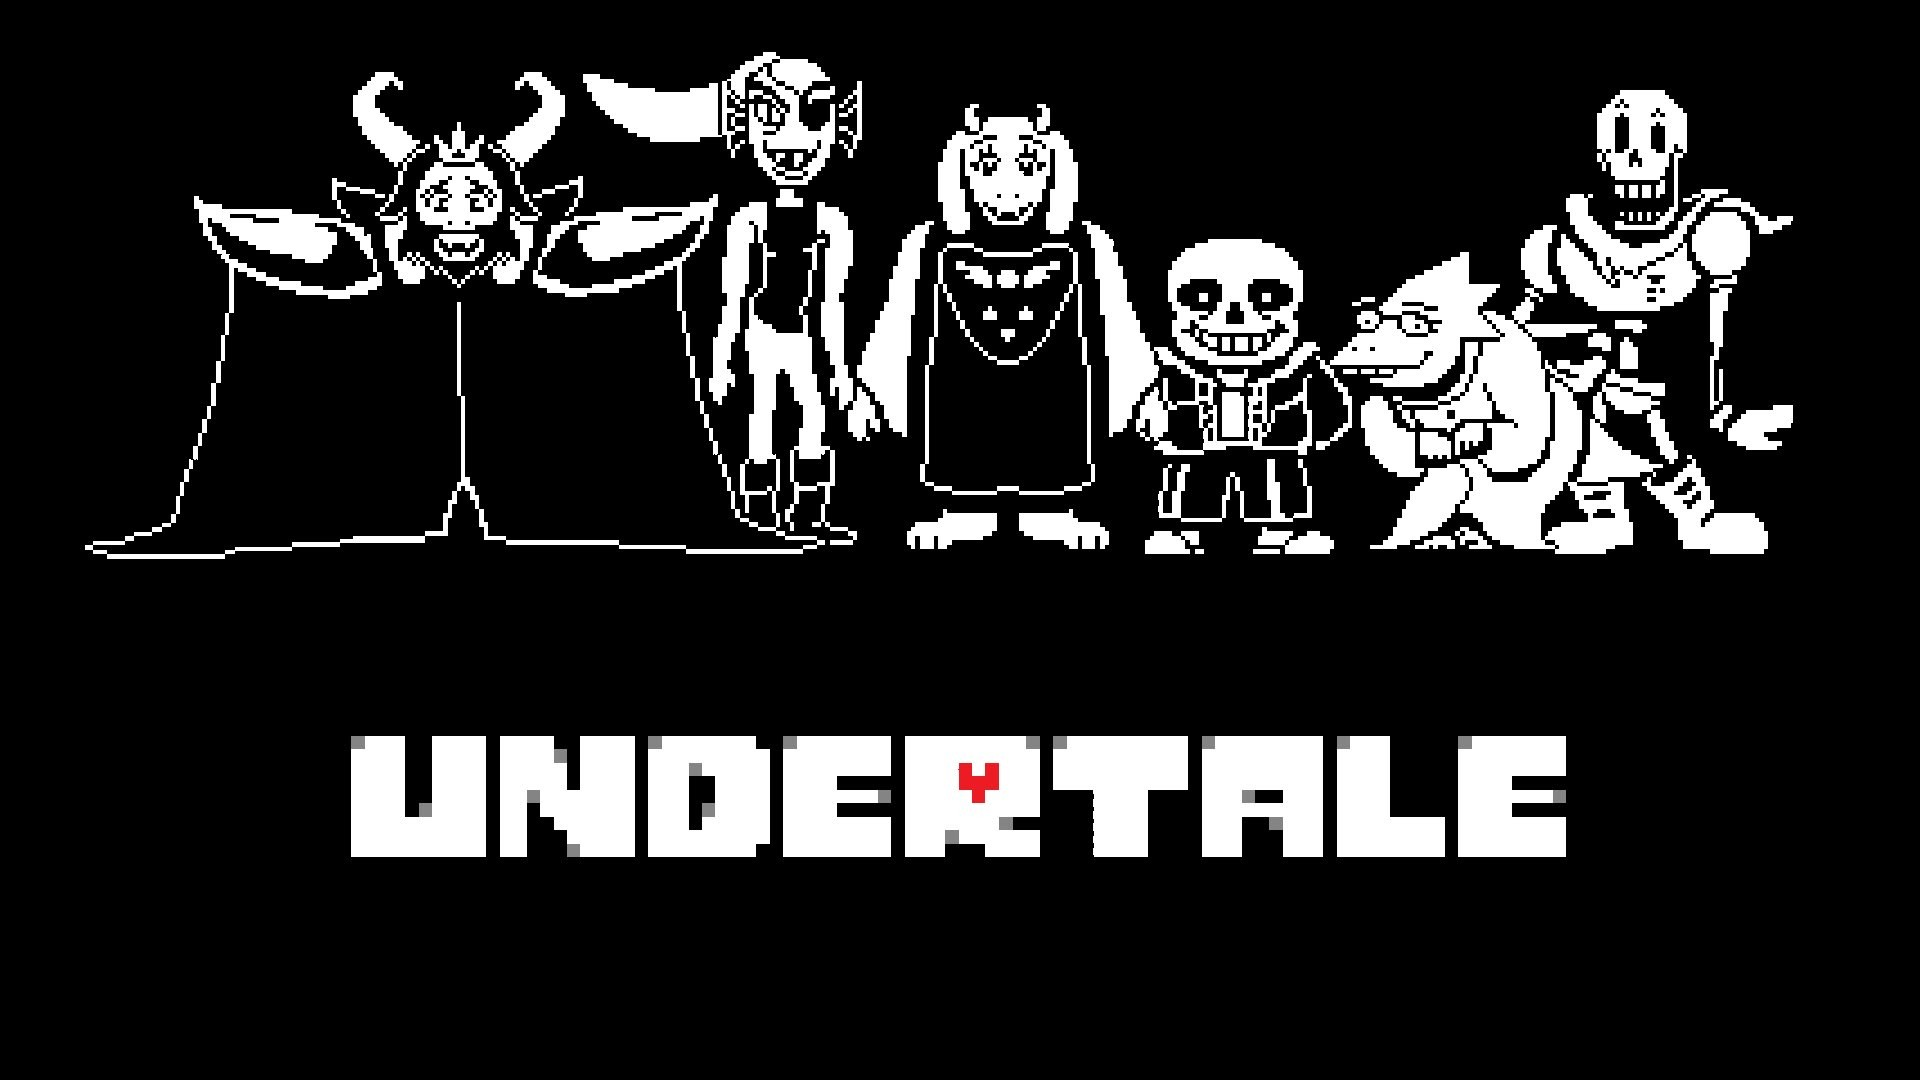 How to get undertale on android! No computers! Churro